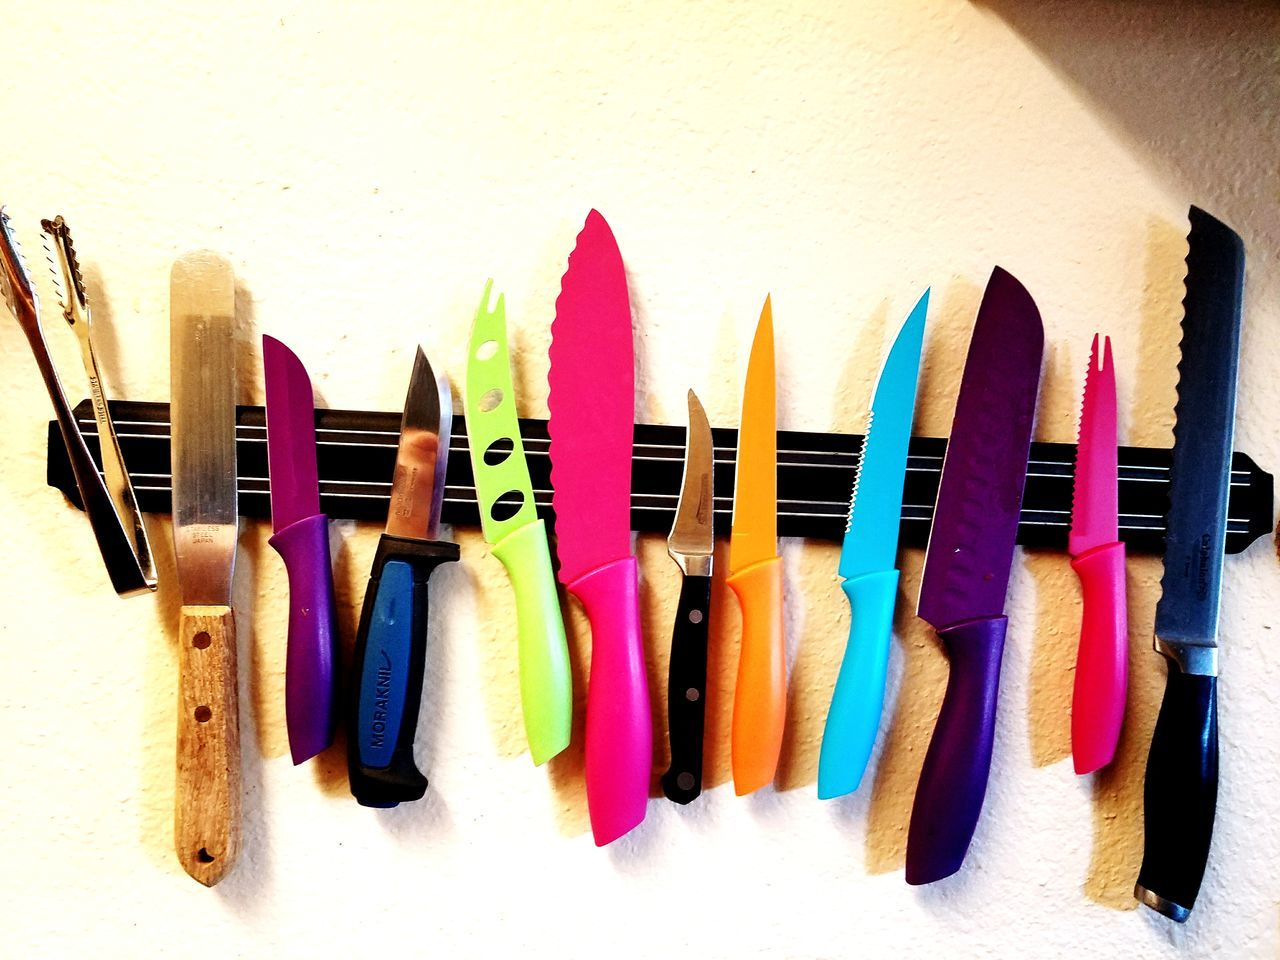 EyeEm Selects knives magnetic knife holder Multi Colored Variation Choice Large Group Of Objects Large Group Of Knives No People Close-up Flourescent Blades statement